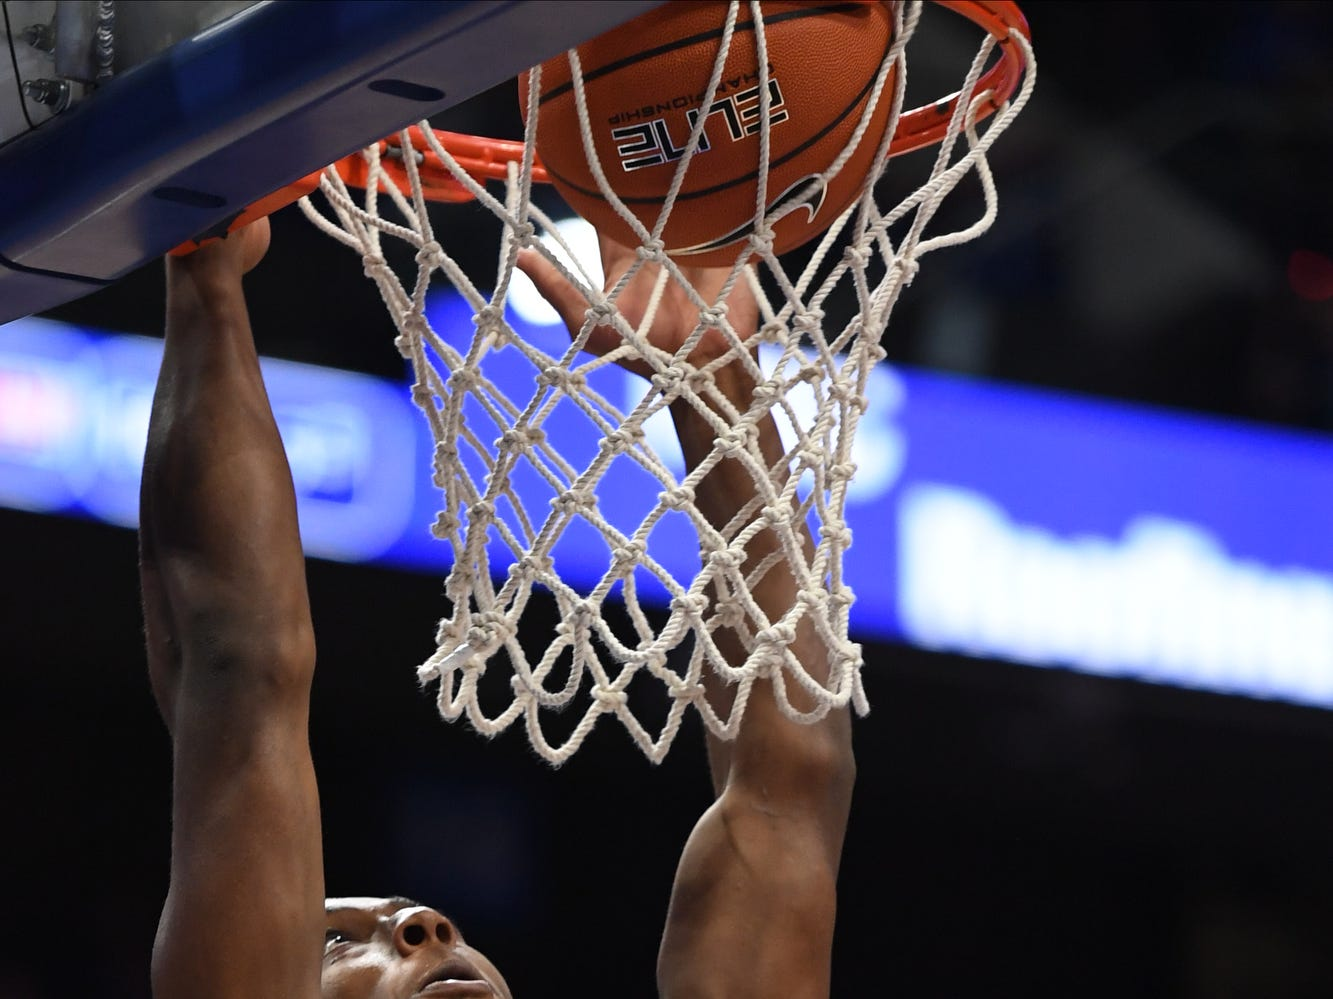 Ashton Hagans dunks during the University of Kentucky basketball game against Transylvania at Rupp Arena in Lexington on Friday, Oct. 26, 2018.